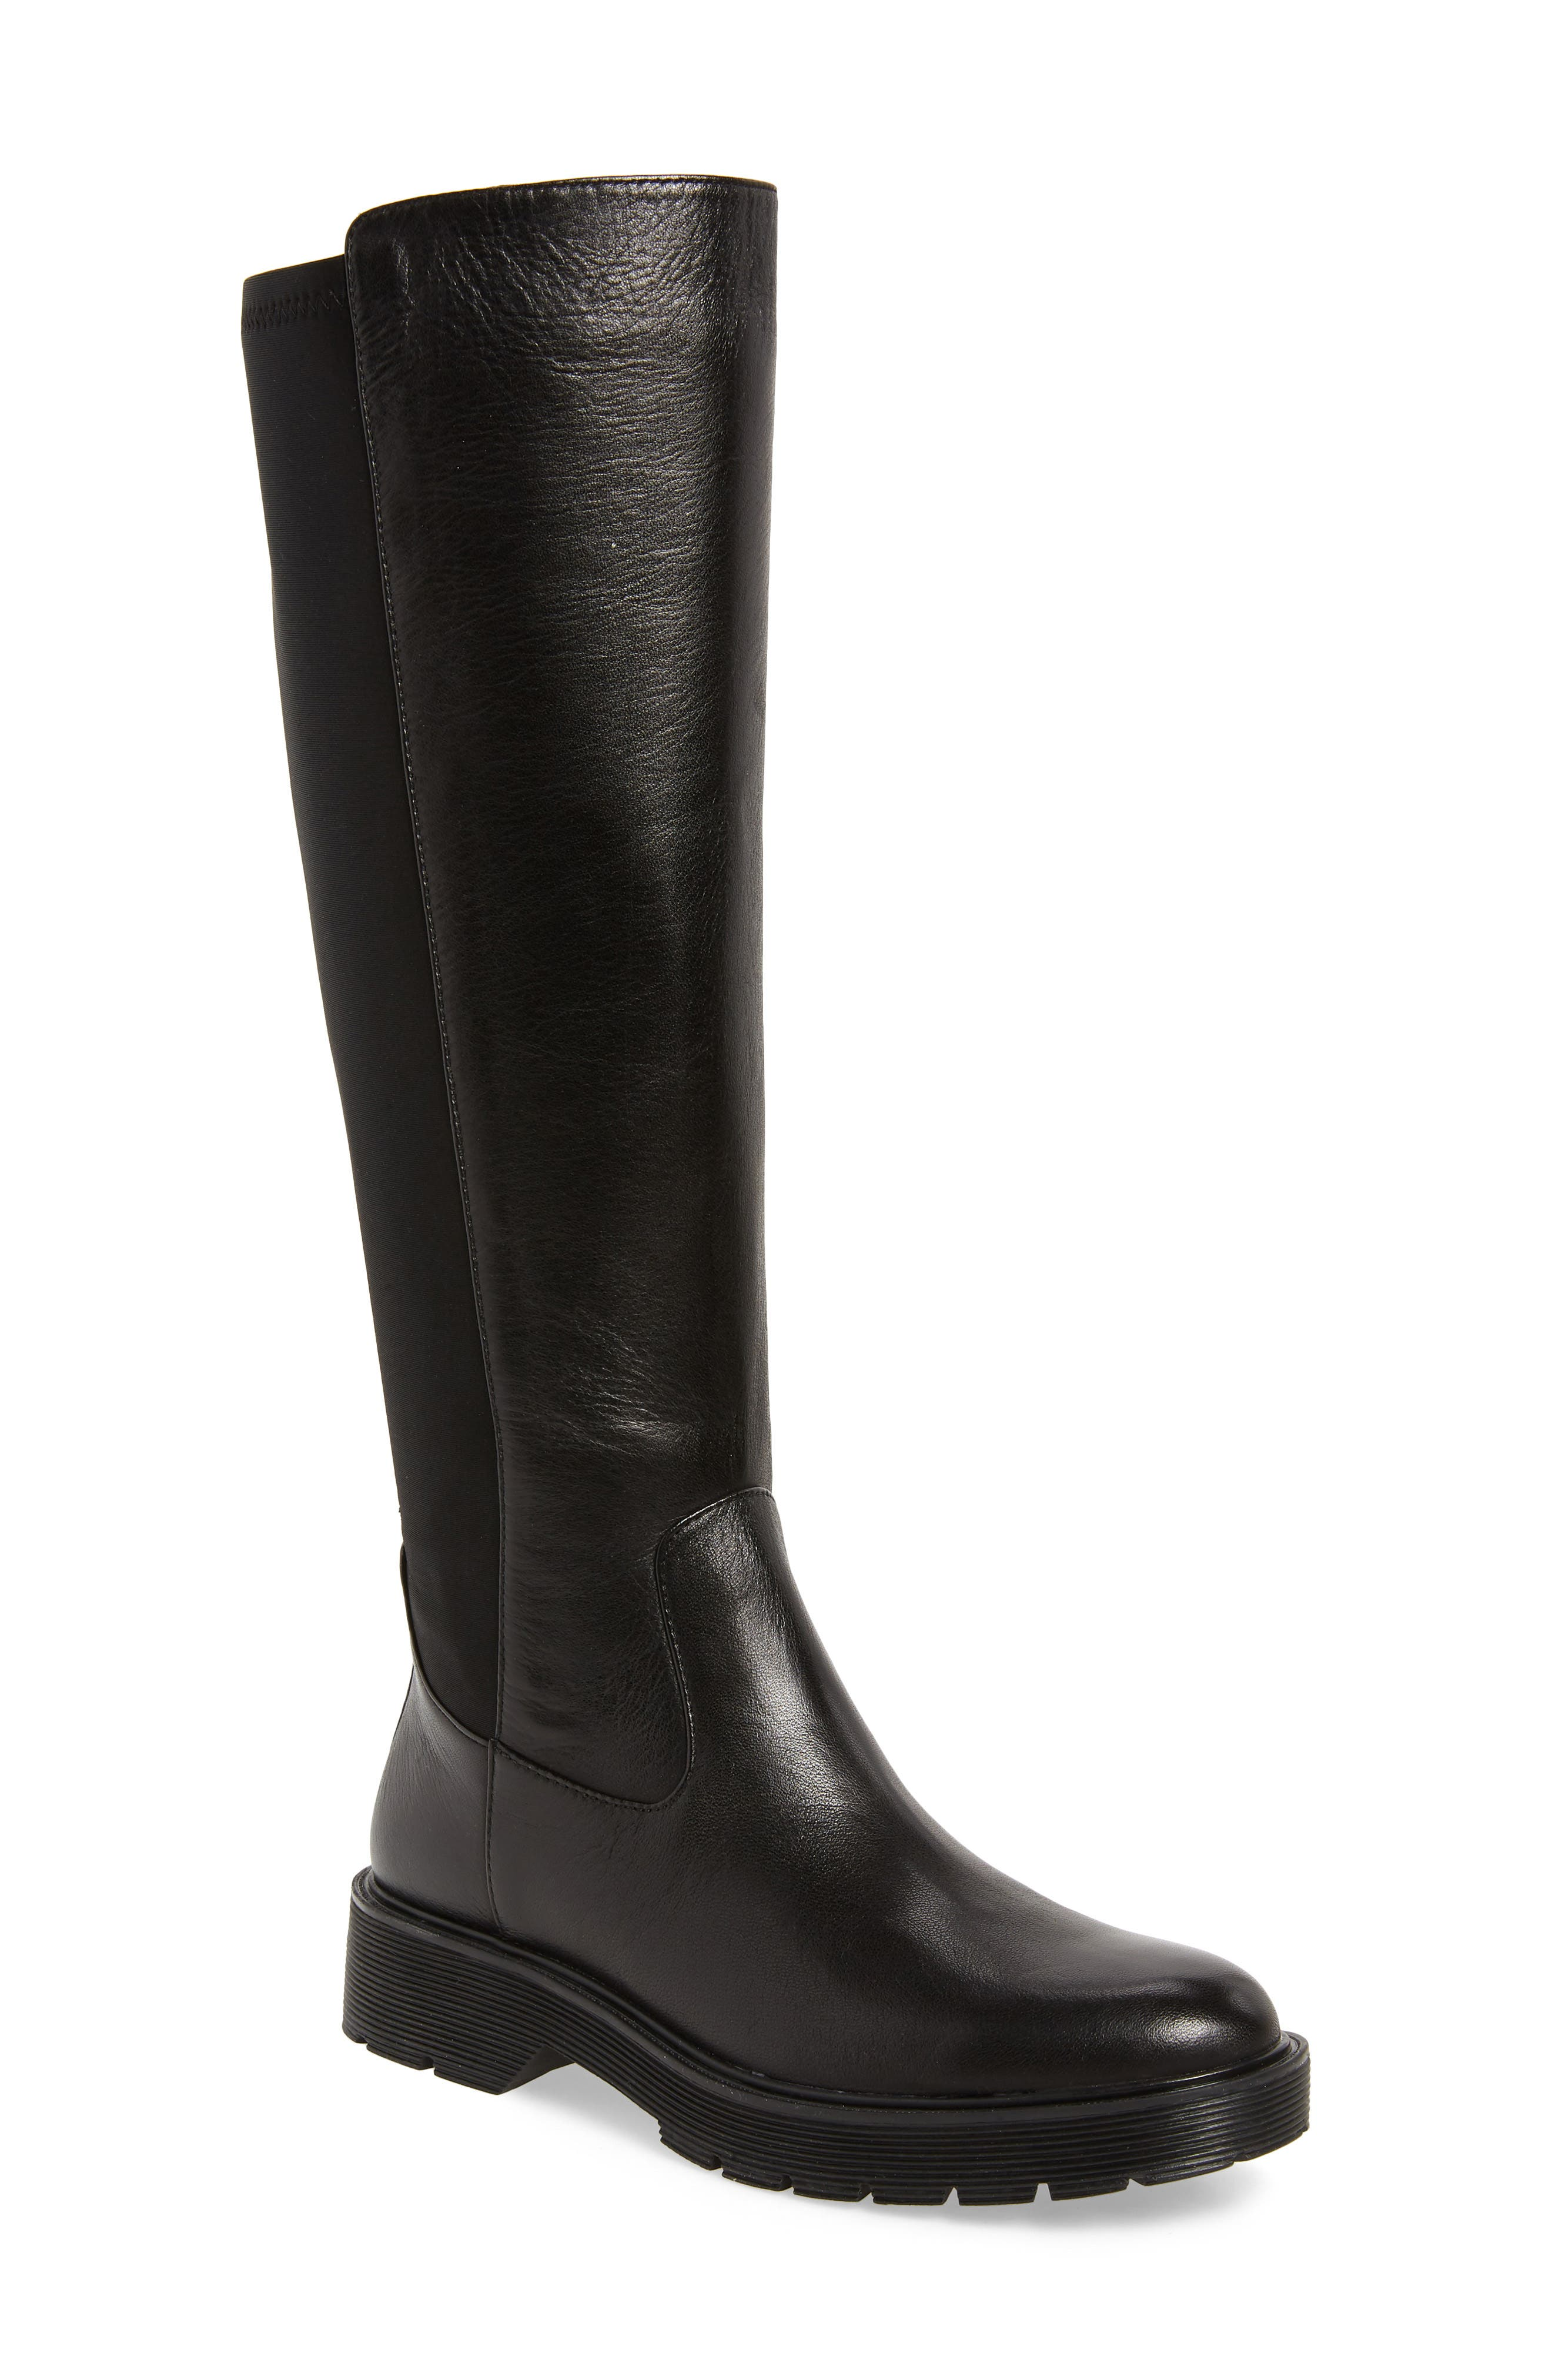 CALVIN KLEIN,                             Themis Knee High Riding Boot,                             Main thumbnail 1, color,                             BLACK LEATHER